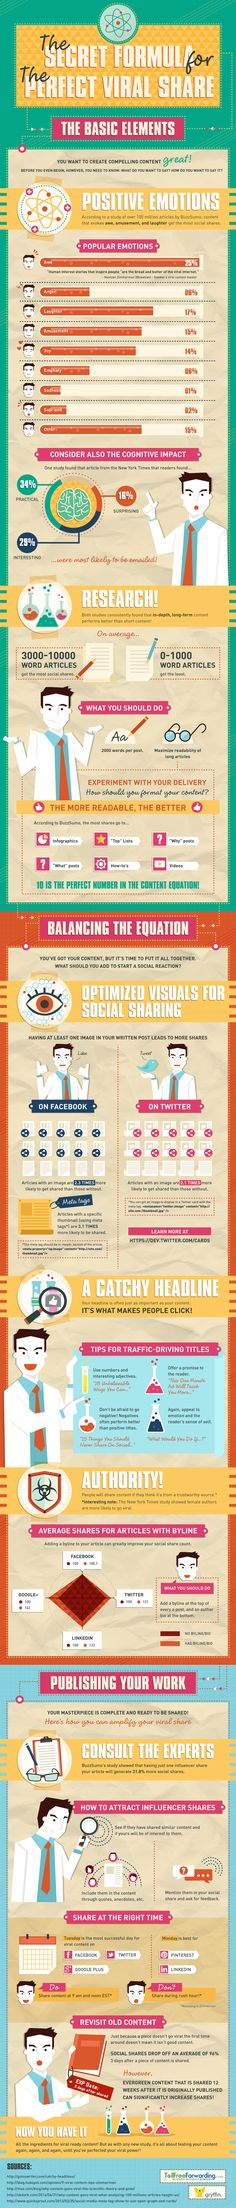 How To Go Viral On #Pinterest - #infographic #contentmarketing